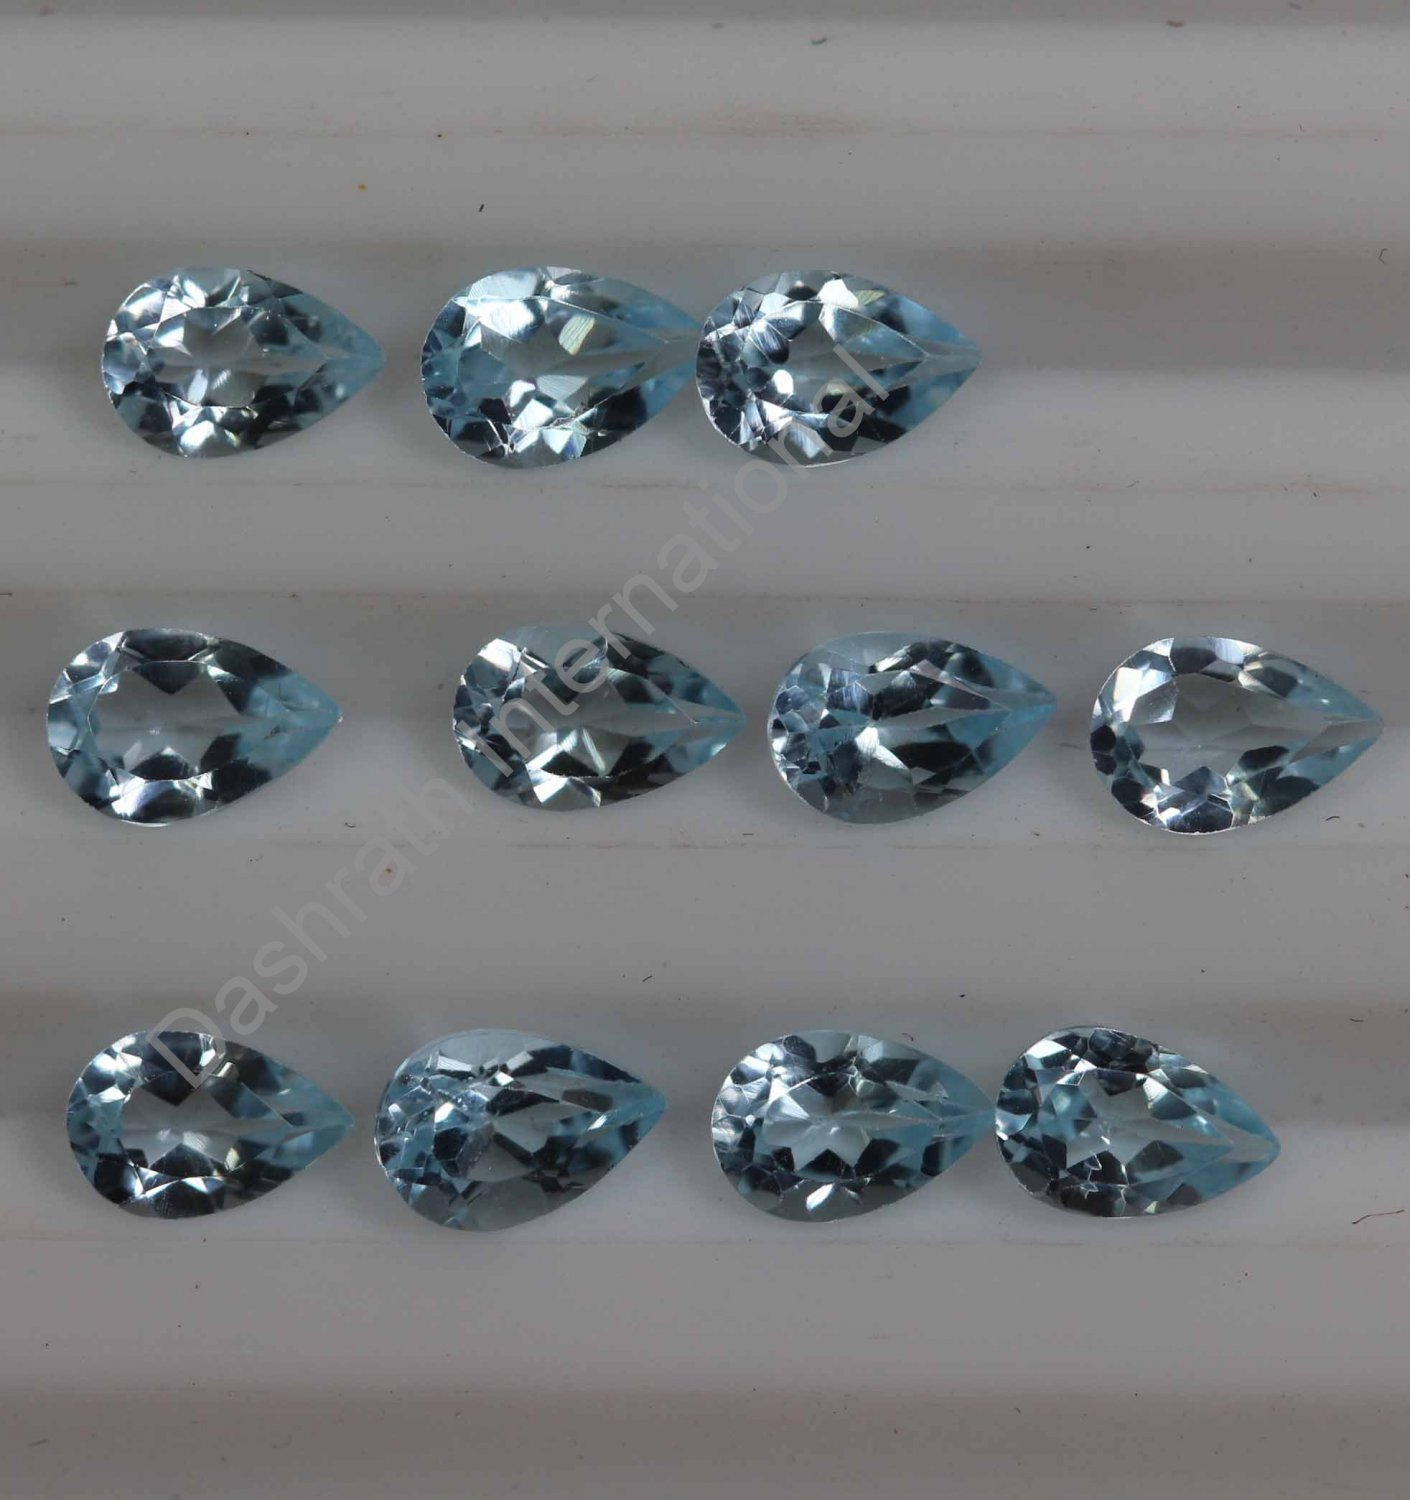 4x6mm  Natural Sky Blue Topaz Faceted Cut Pear 10 Pieces  Lot Top Quality Loose Gemstone